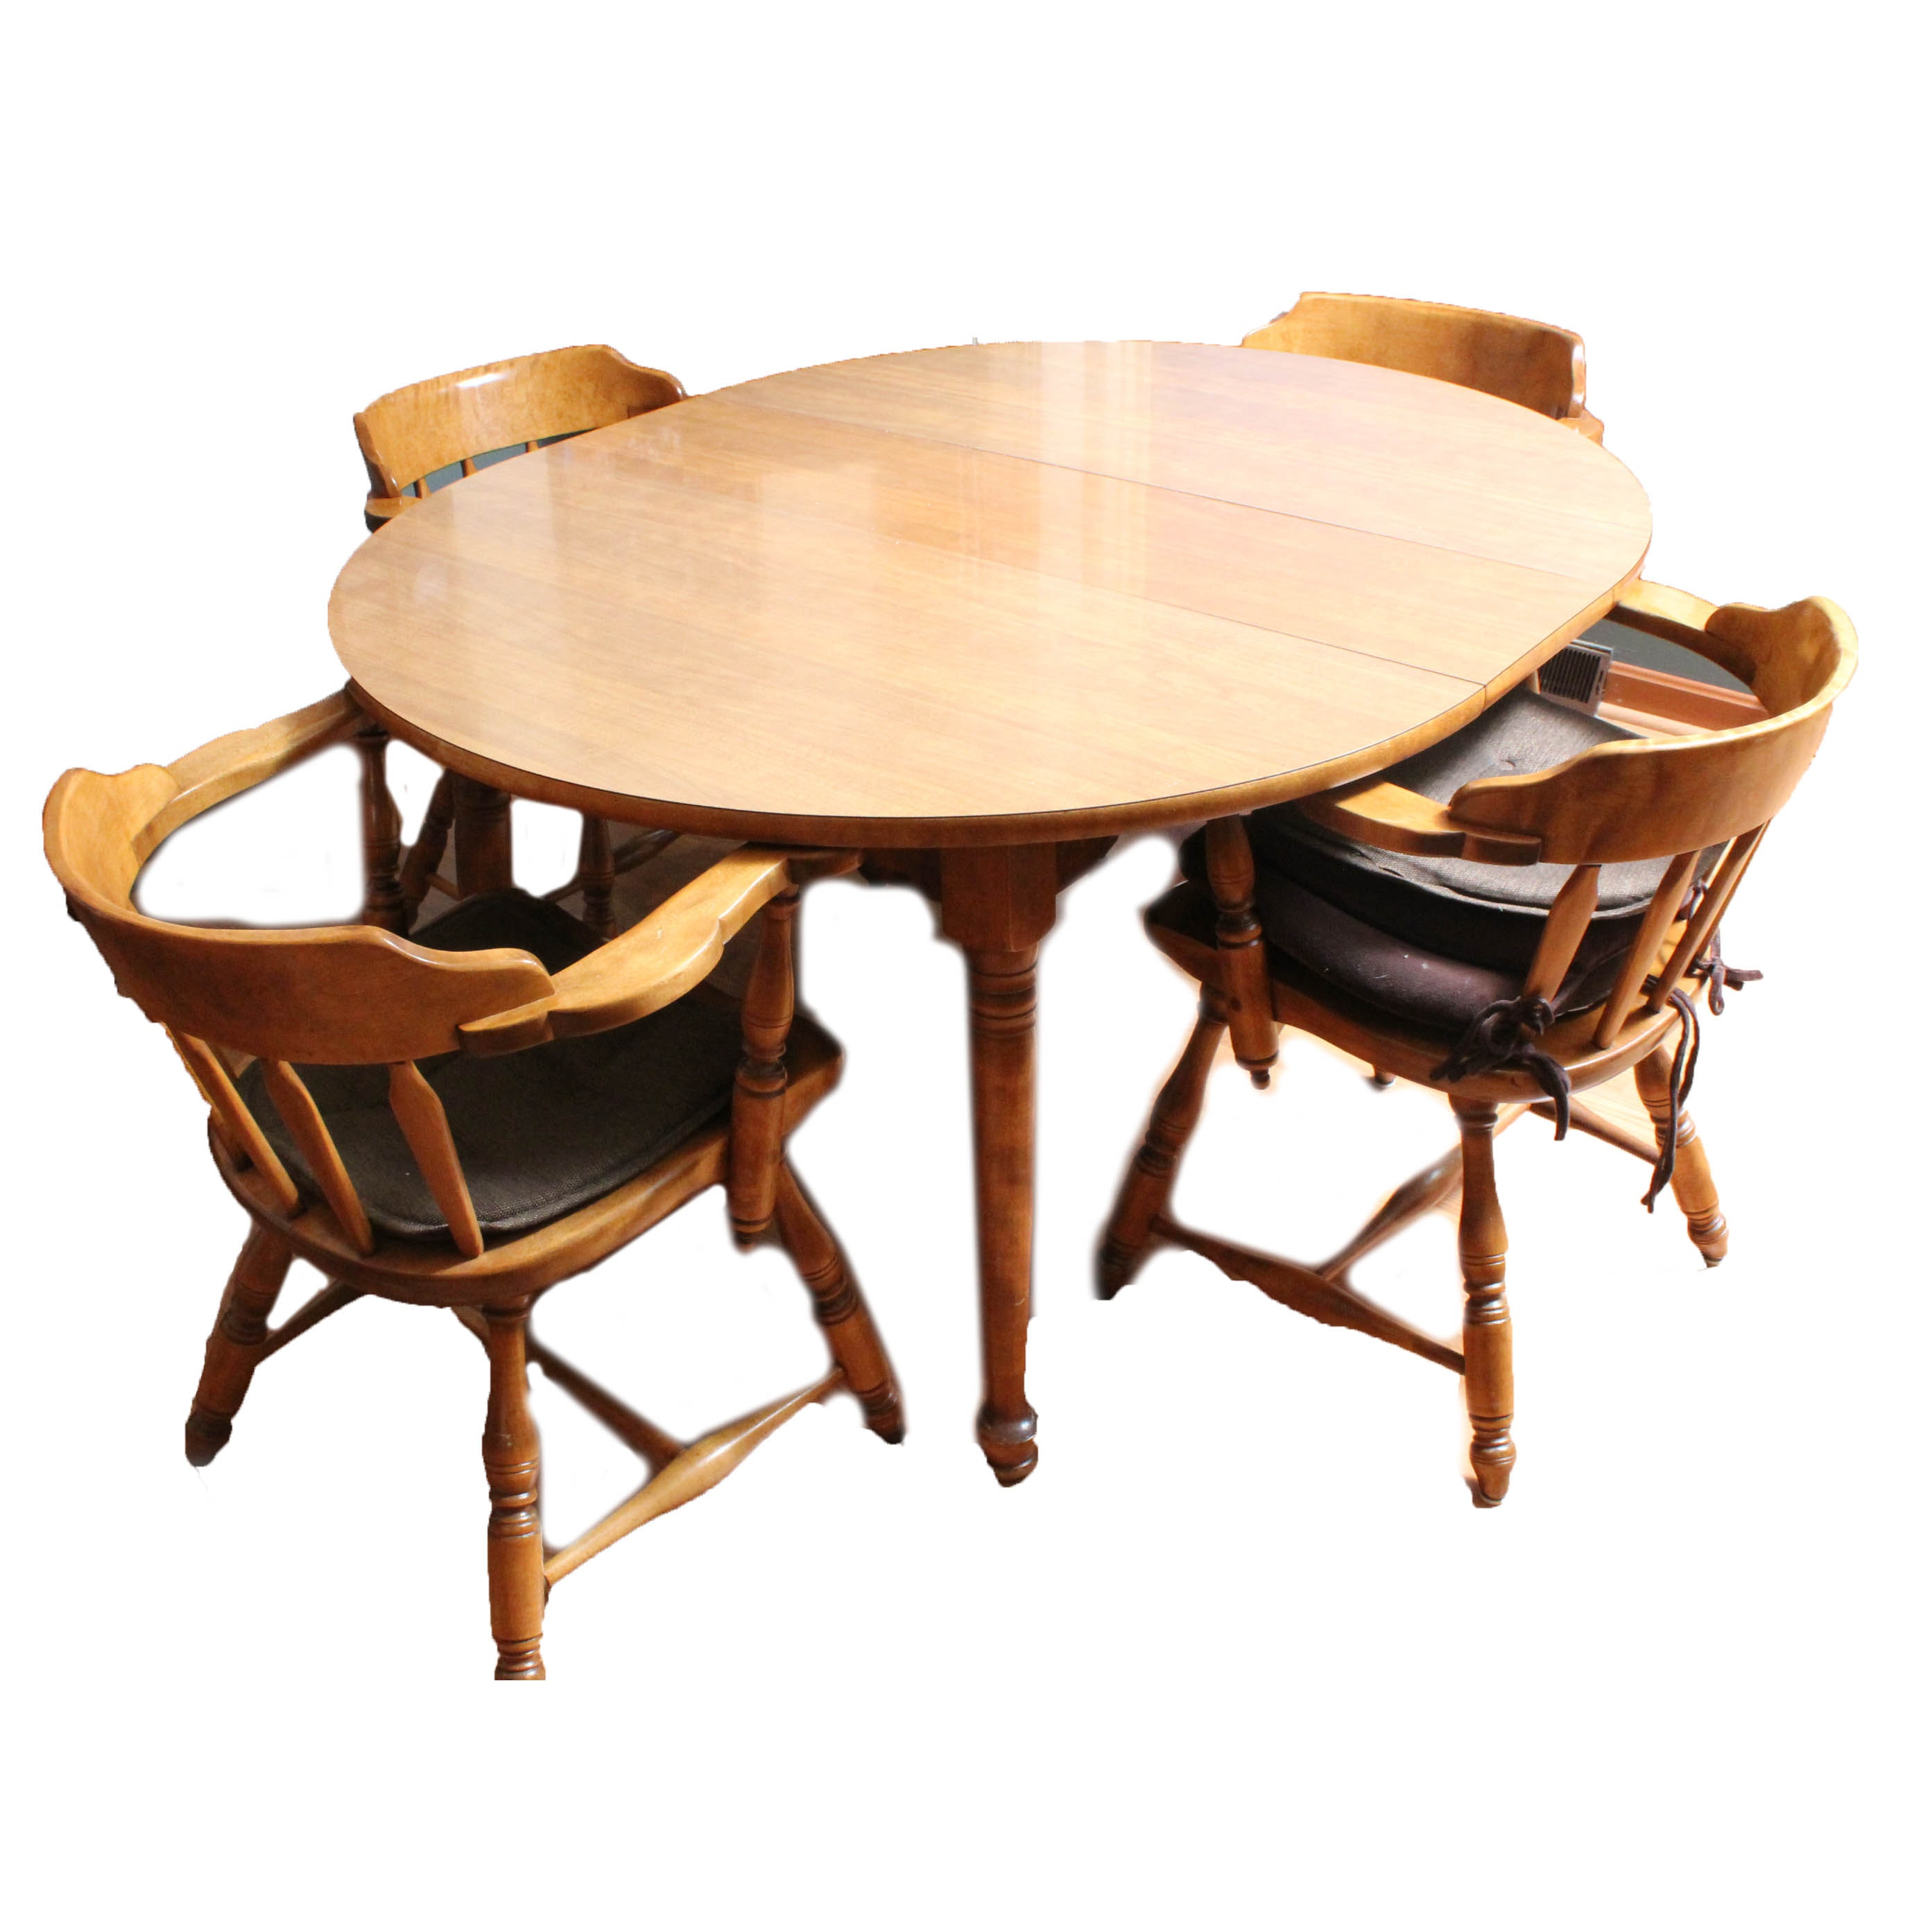 Vintage Wood and Laminate Kitchen Table and Chair Set